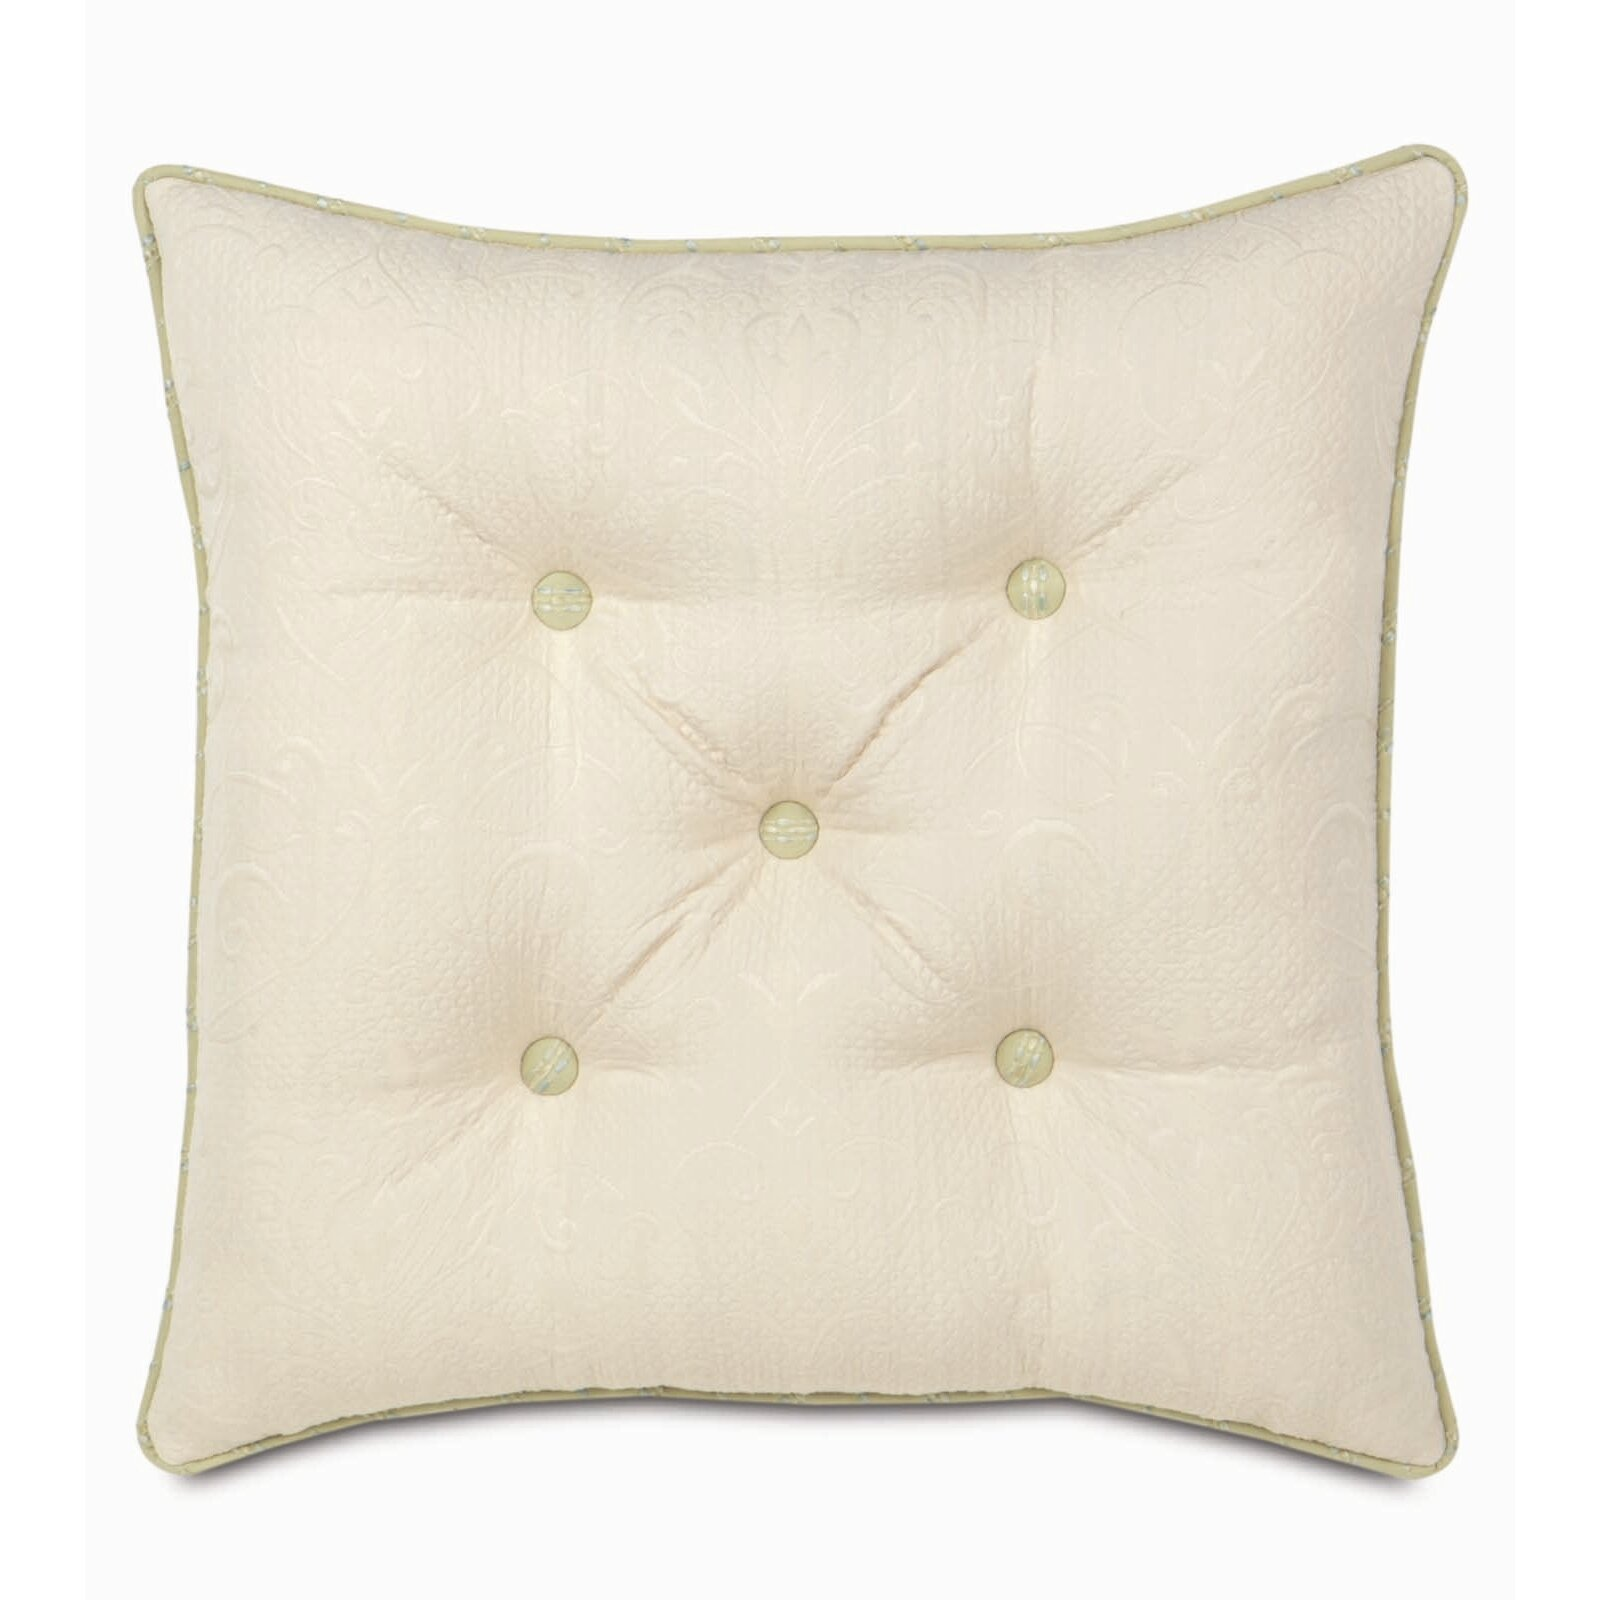 Face Painting Southport Eastern Accents Southport Polyester Jacqueline Tufted Decorative Pillow